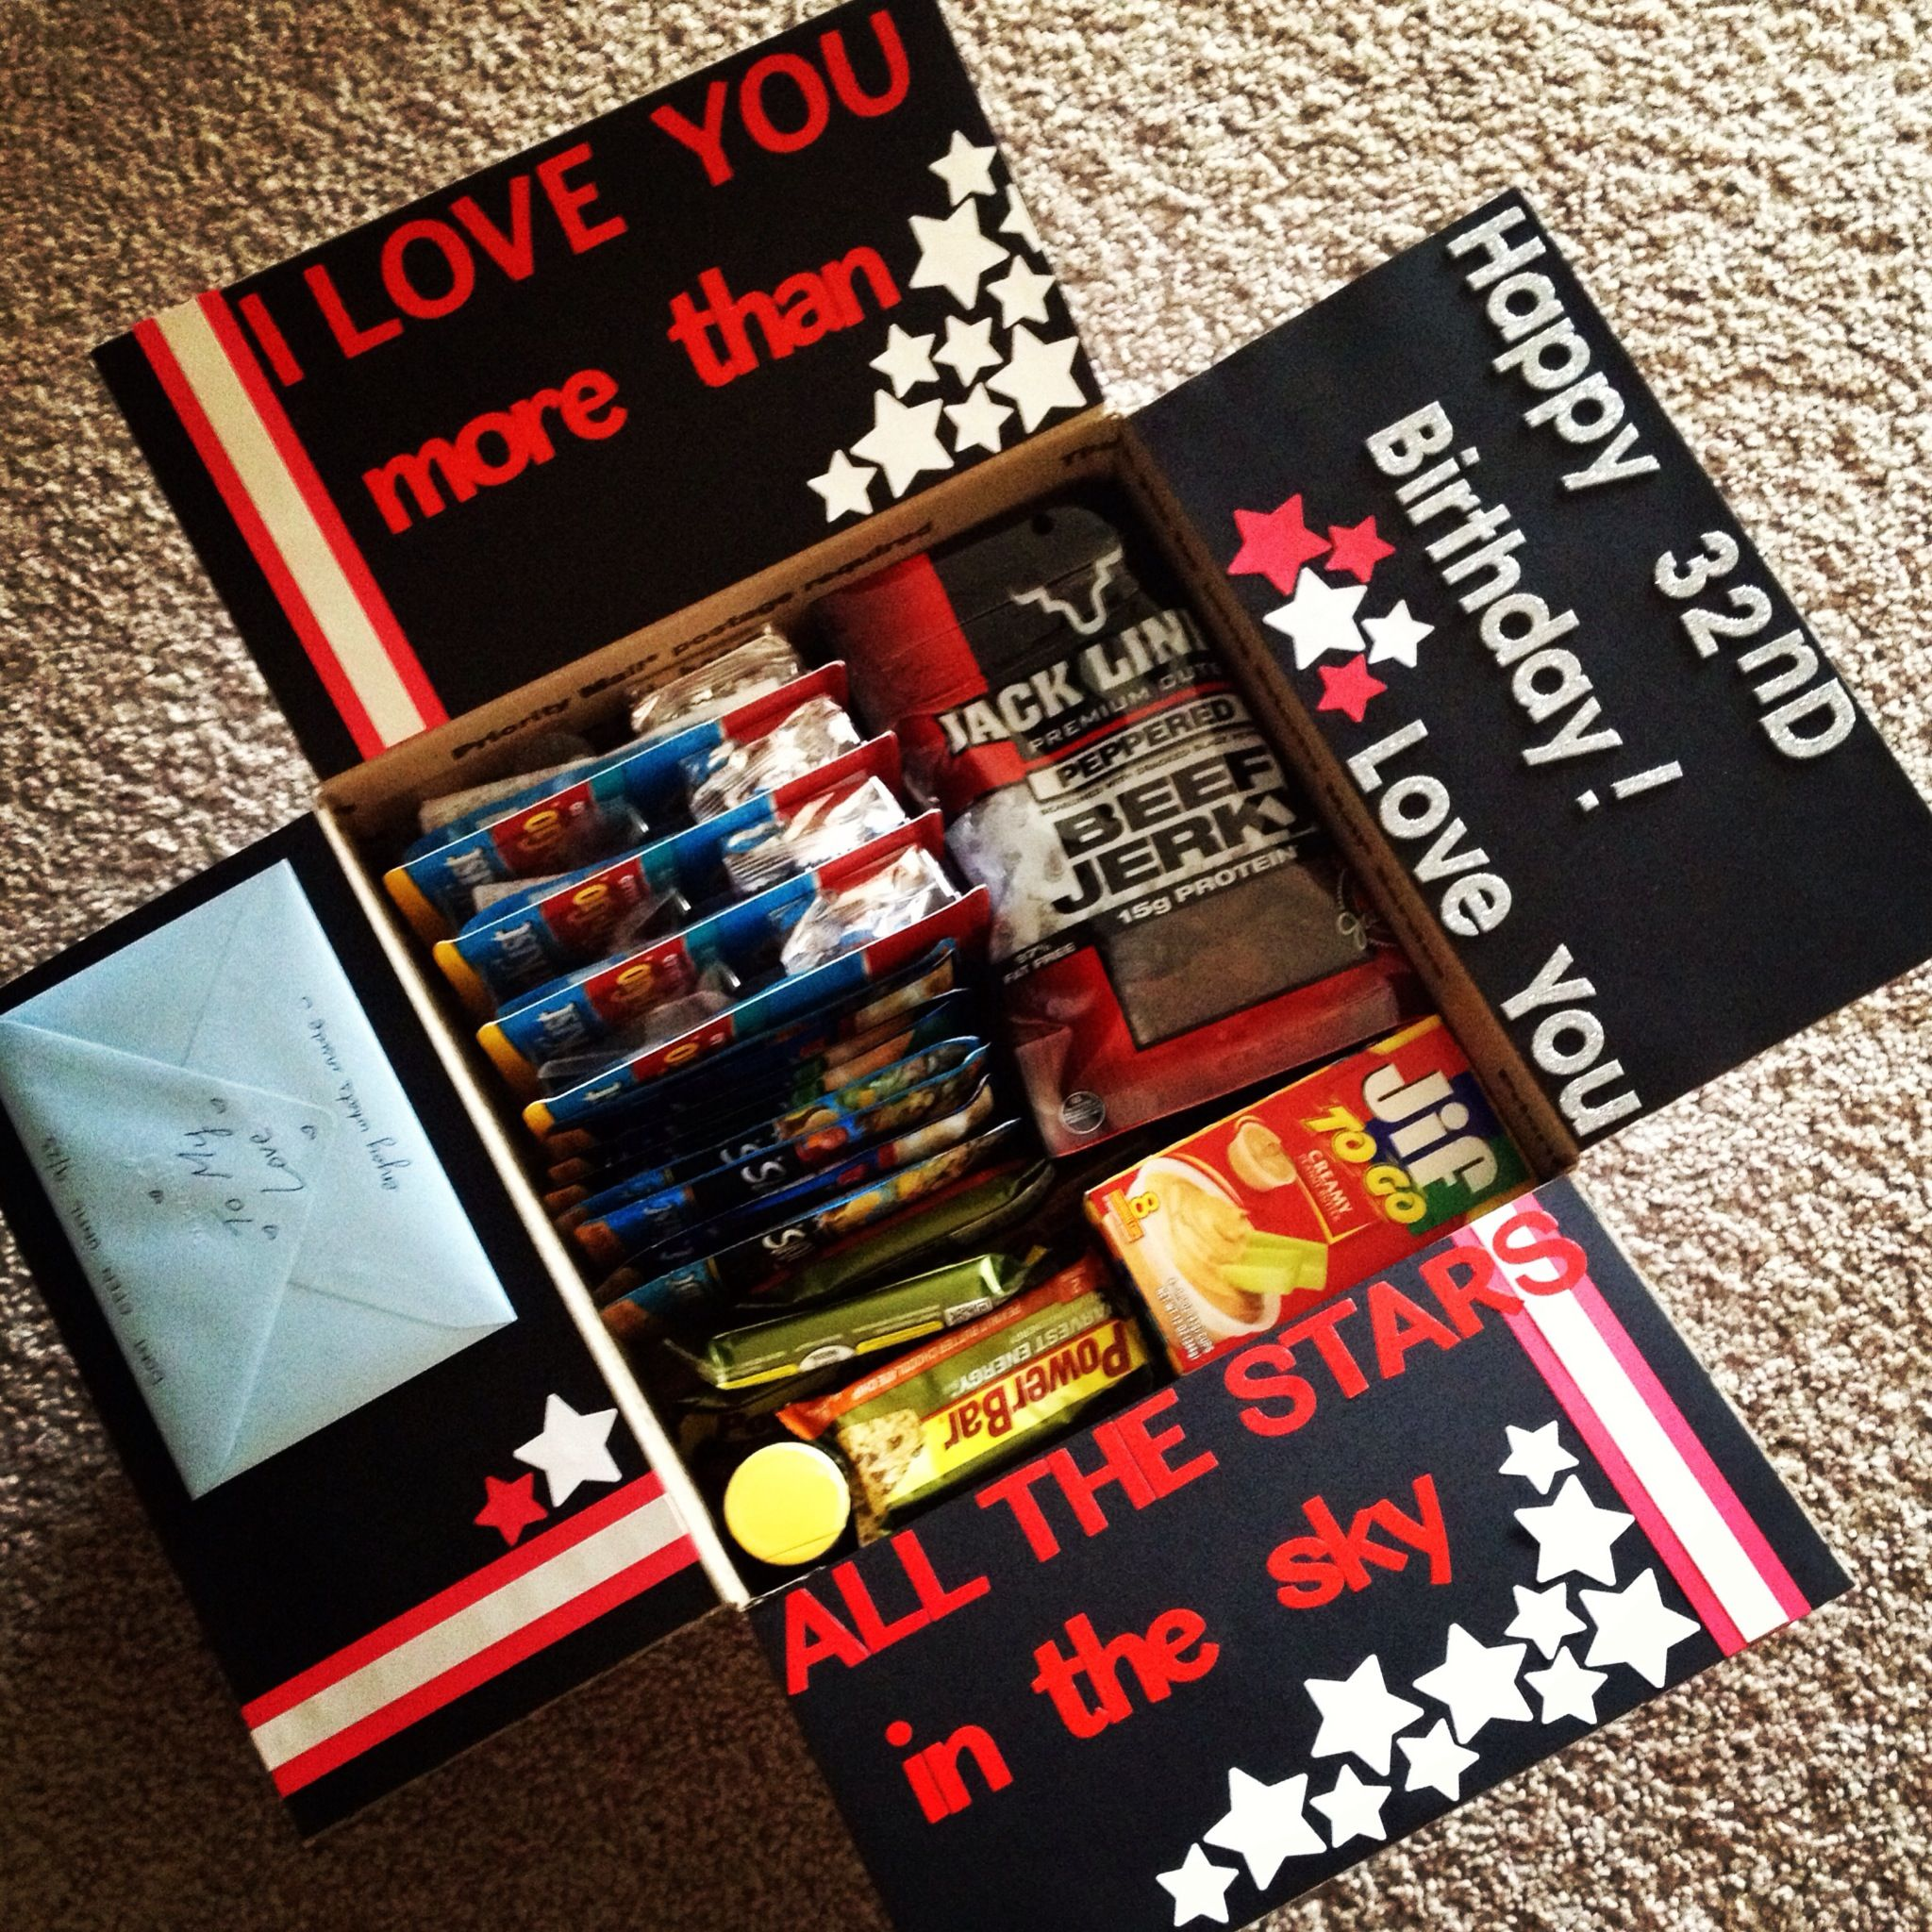 My first decorated care package, mixture of love and